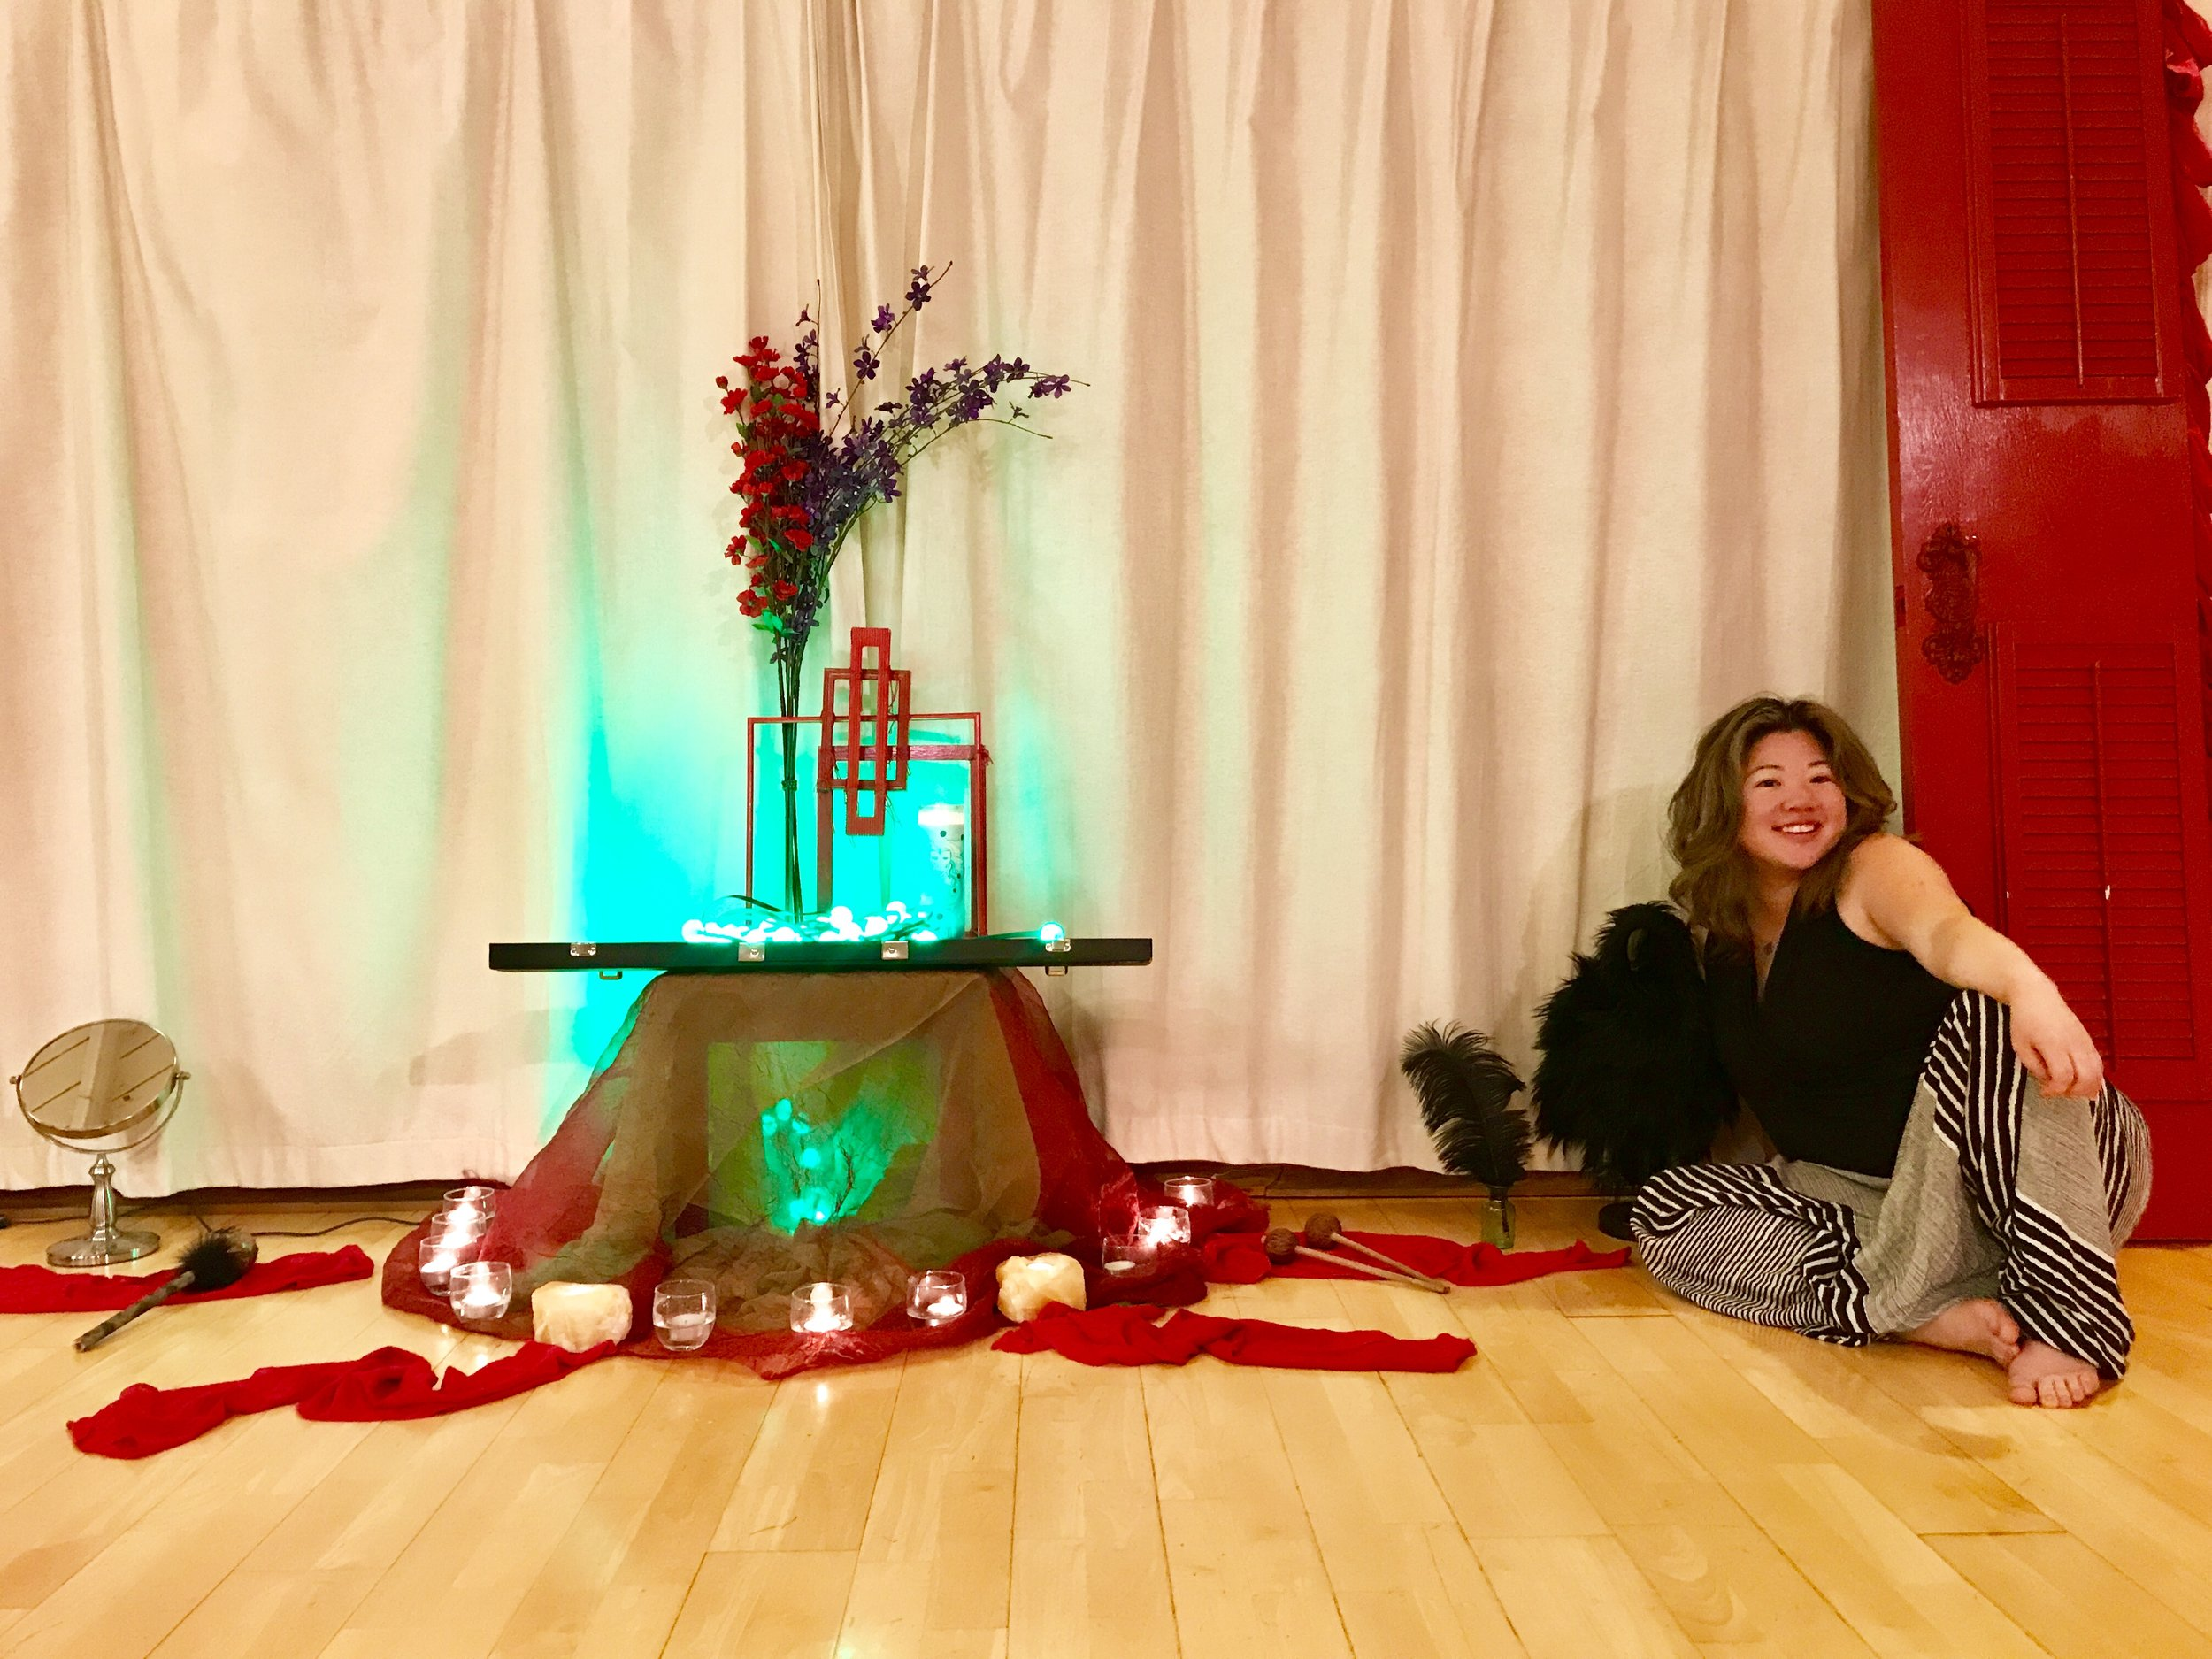 Red Door Altar Installation - Day 1 - Go : : Fire